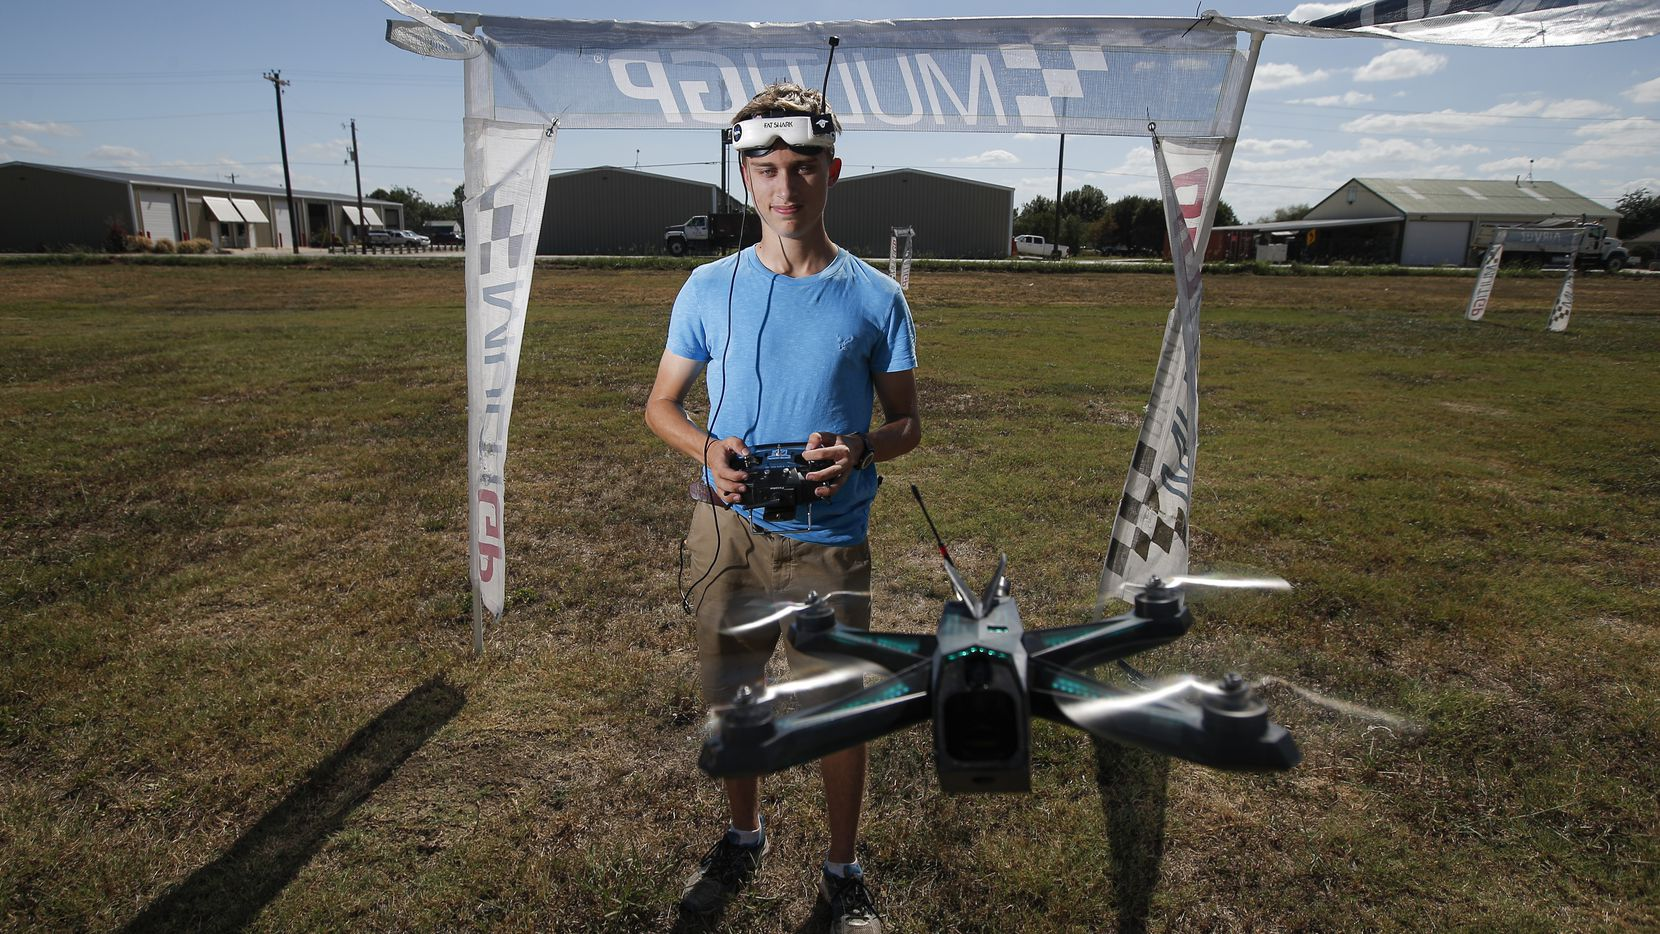 Professional drone pilot Alex Vanover poses for a photo with one of his racing drones at the Northwest Regional Airport in Roanoke, Tuesday, October 1, 2019. Vanover is one of the top pilots in the Drone Racing League.